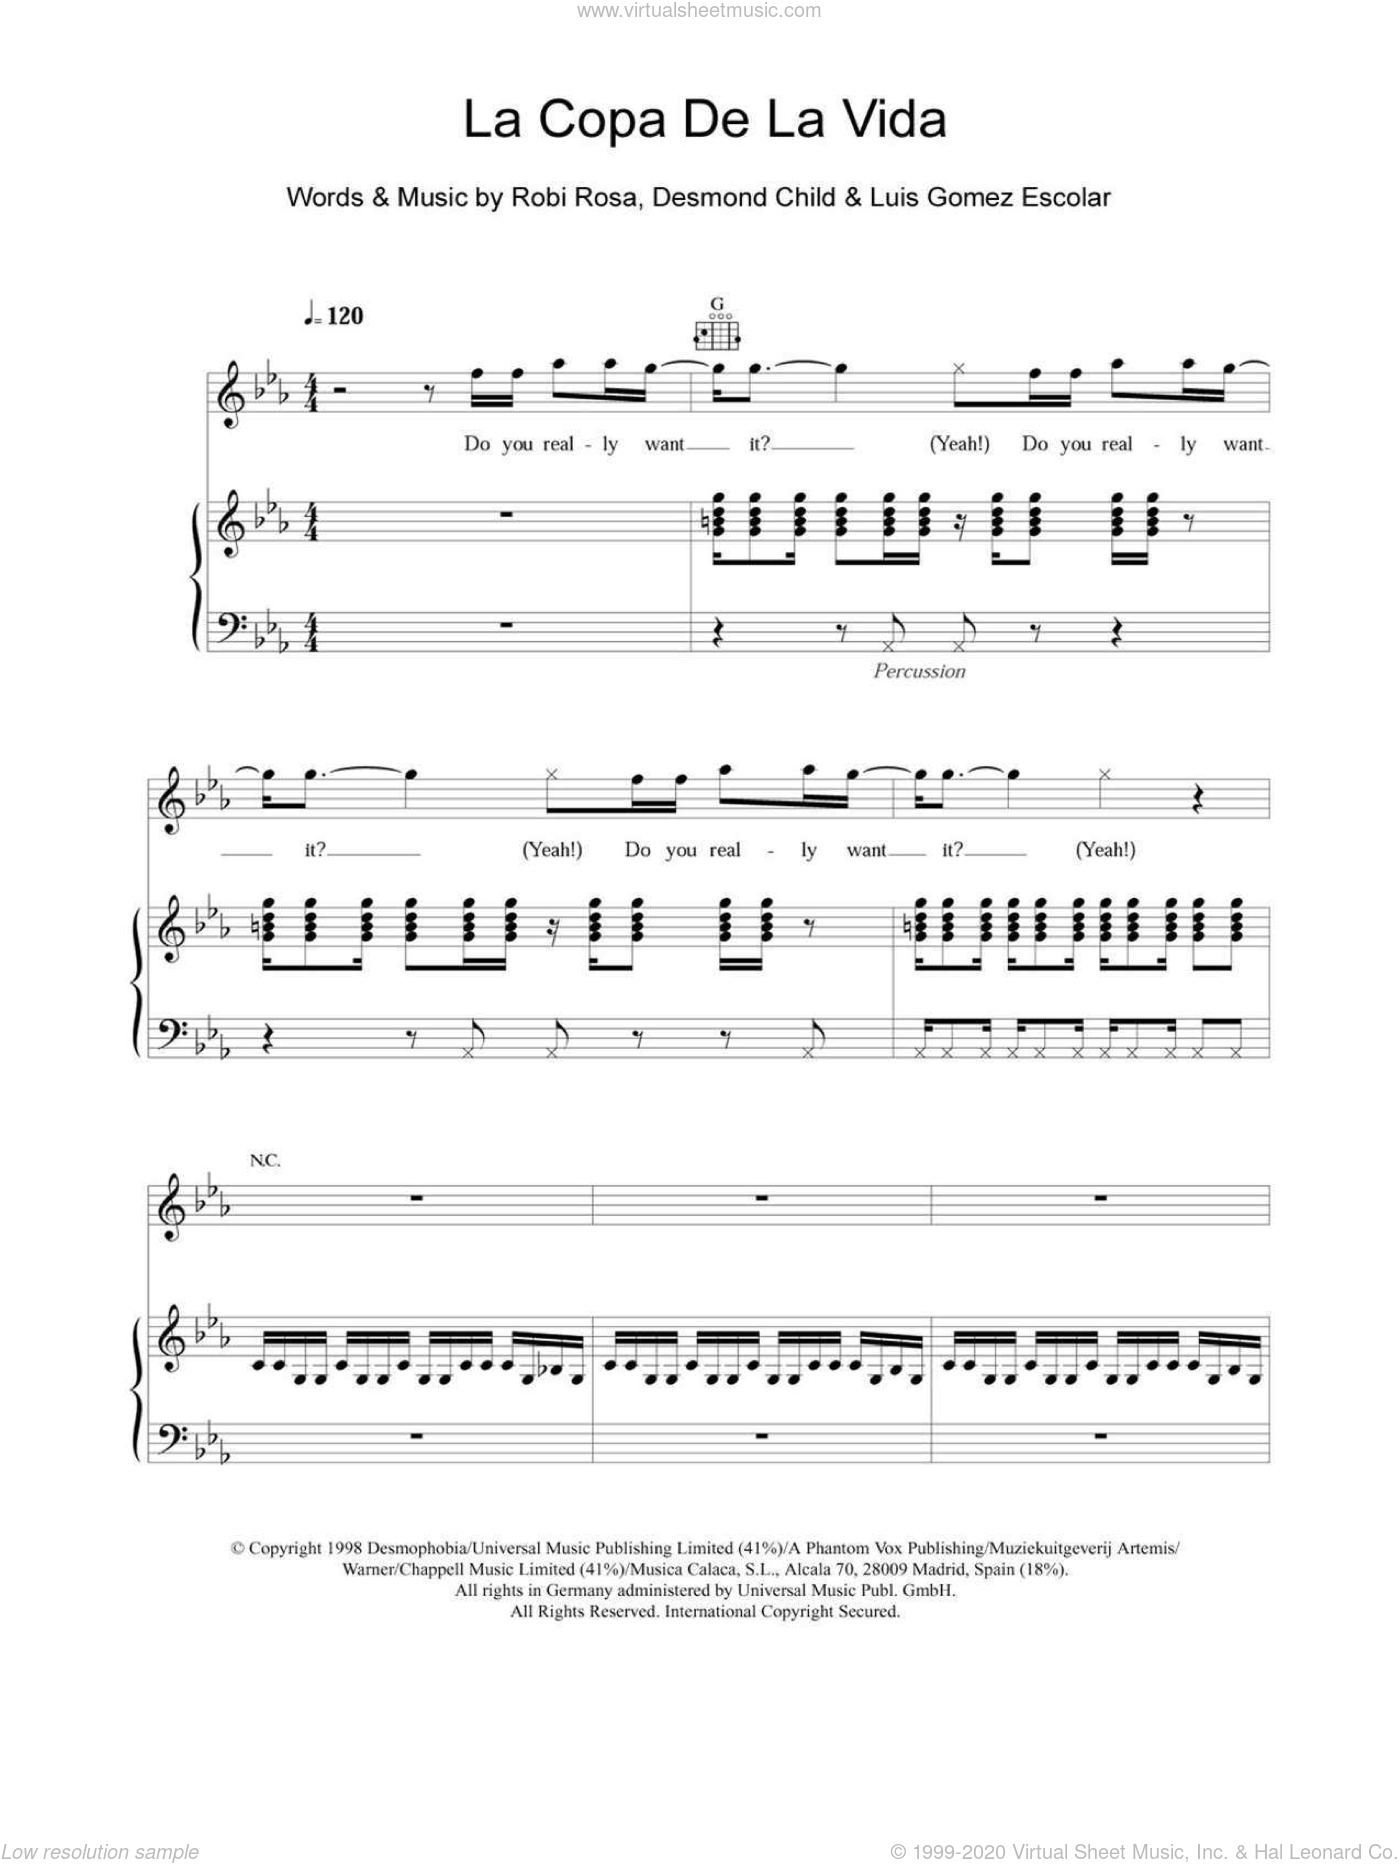 La Copa De La Vida (The Cup Of Life) sheet music for voice, piano or guitar by Robi Rosa, Ricky Martin, Desmond Child and Luis Gomez Escolar. Score Image Preview.